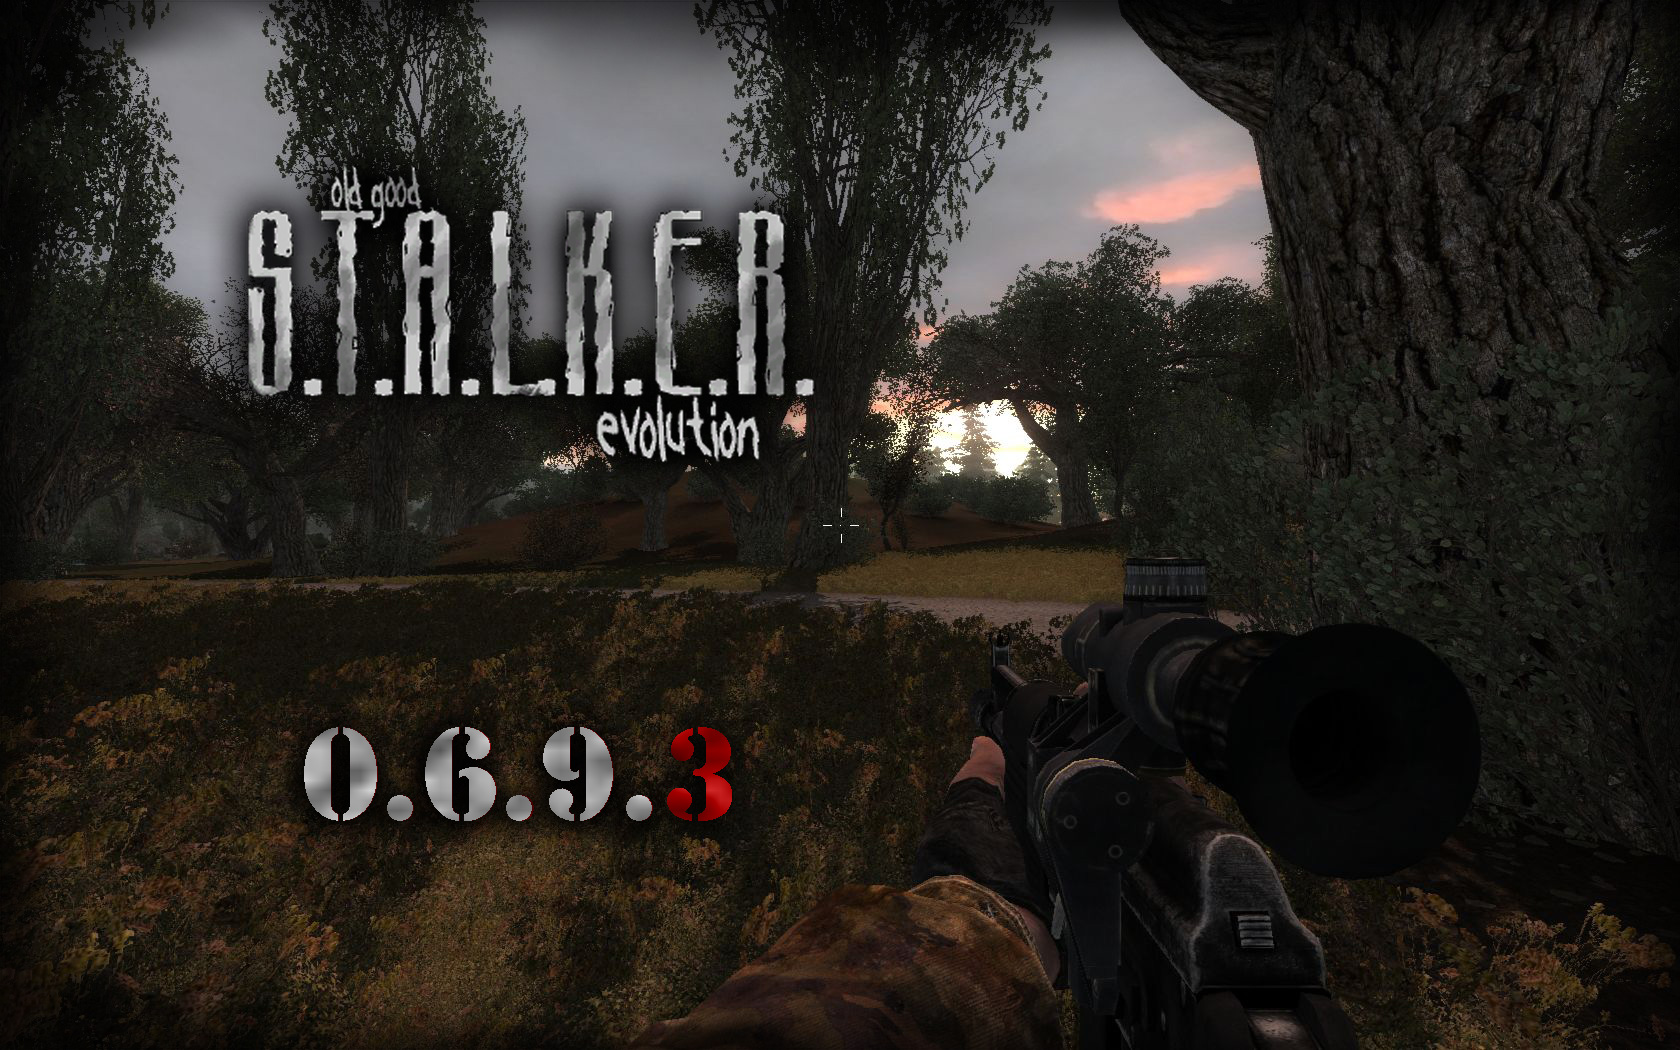 With total turn-off of all additional effects video card requirements comply with the original game using full dynamic lighting ... & OGSE 0.6.9.3 announcement news - Old Good STALKER Evolution mod ... azcodes.com